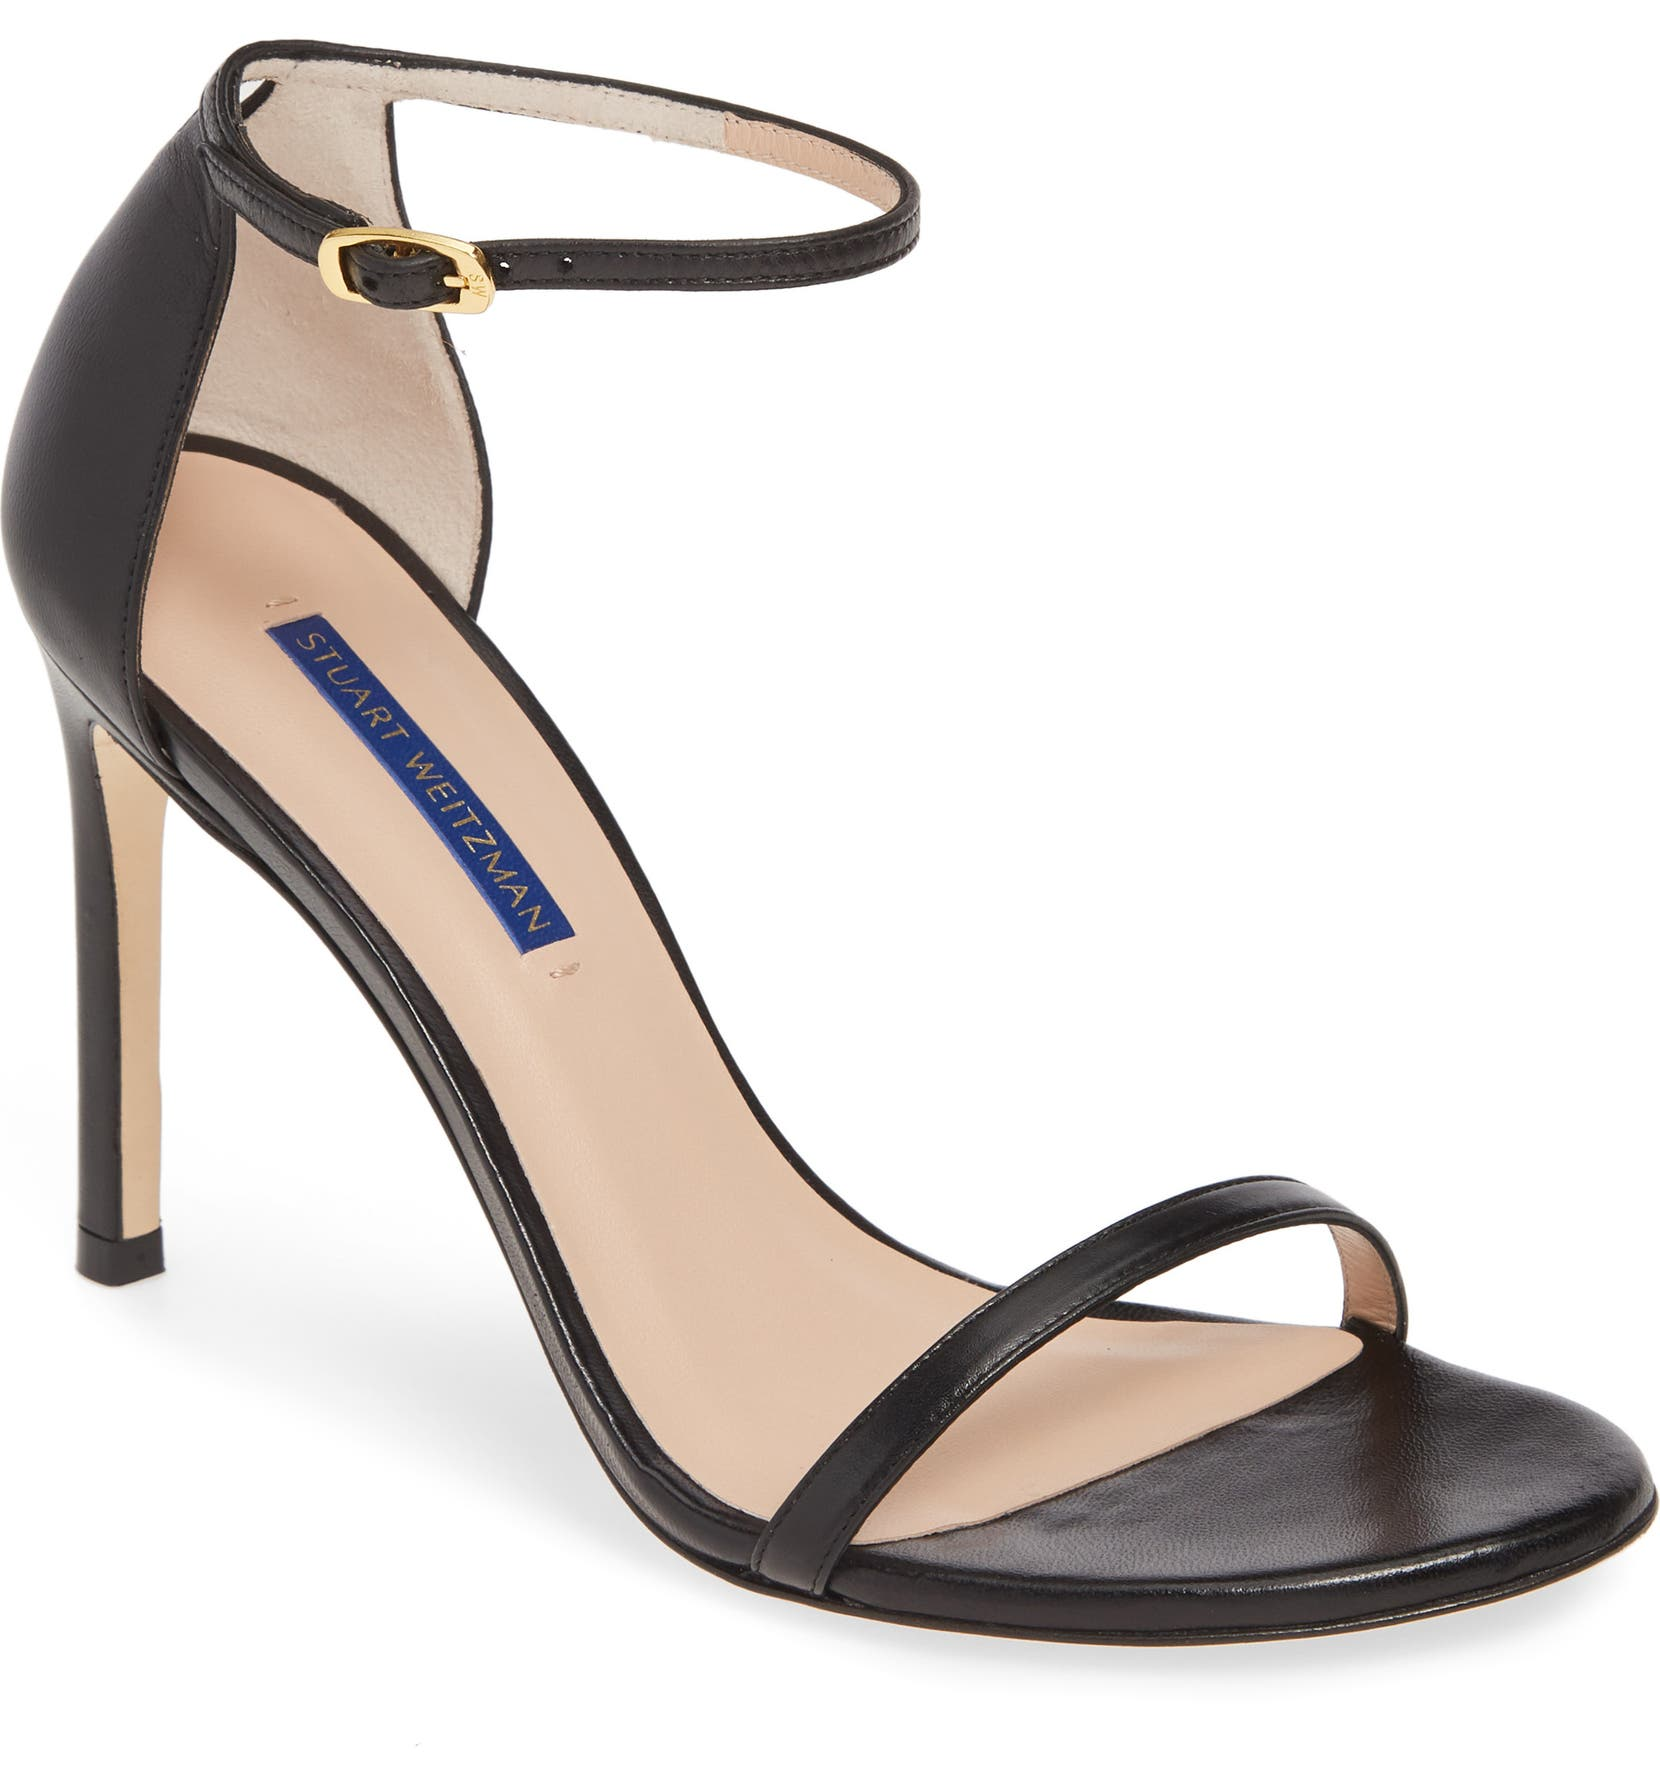 6b785b810a3 Nudistsong Ankle Strap Sandal